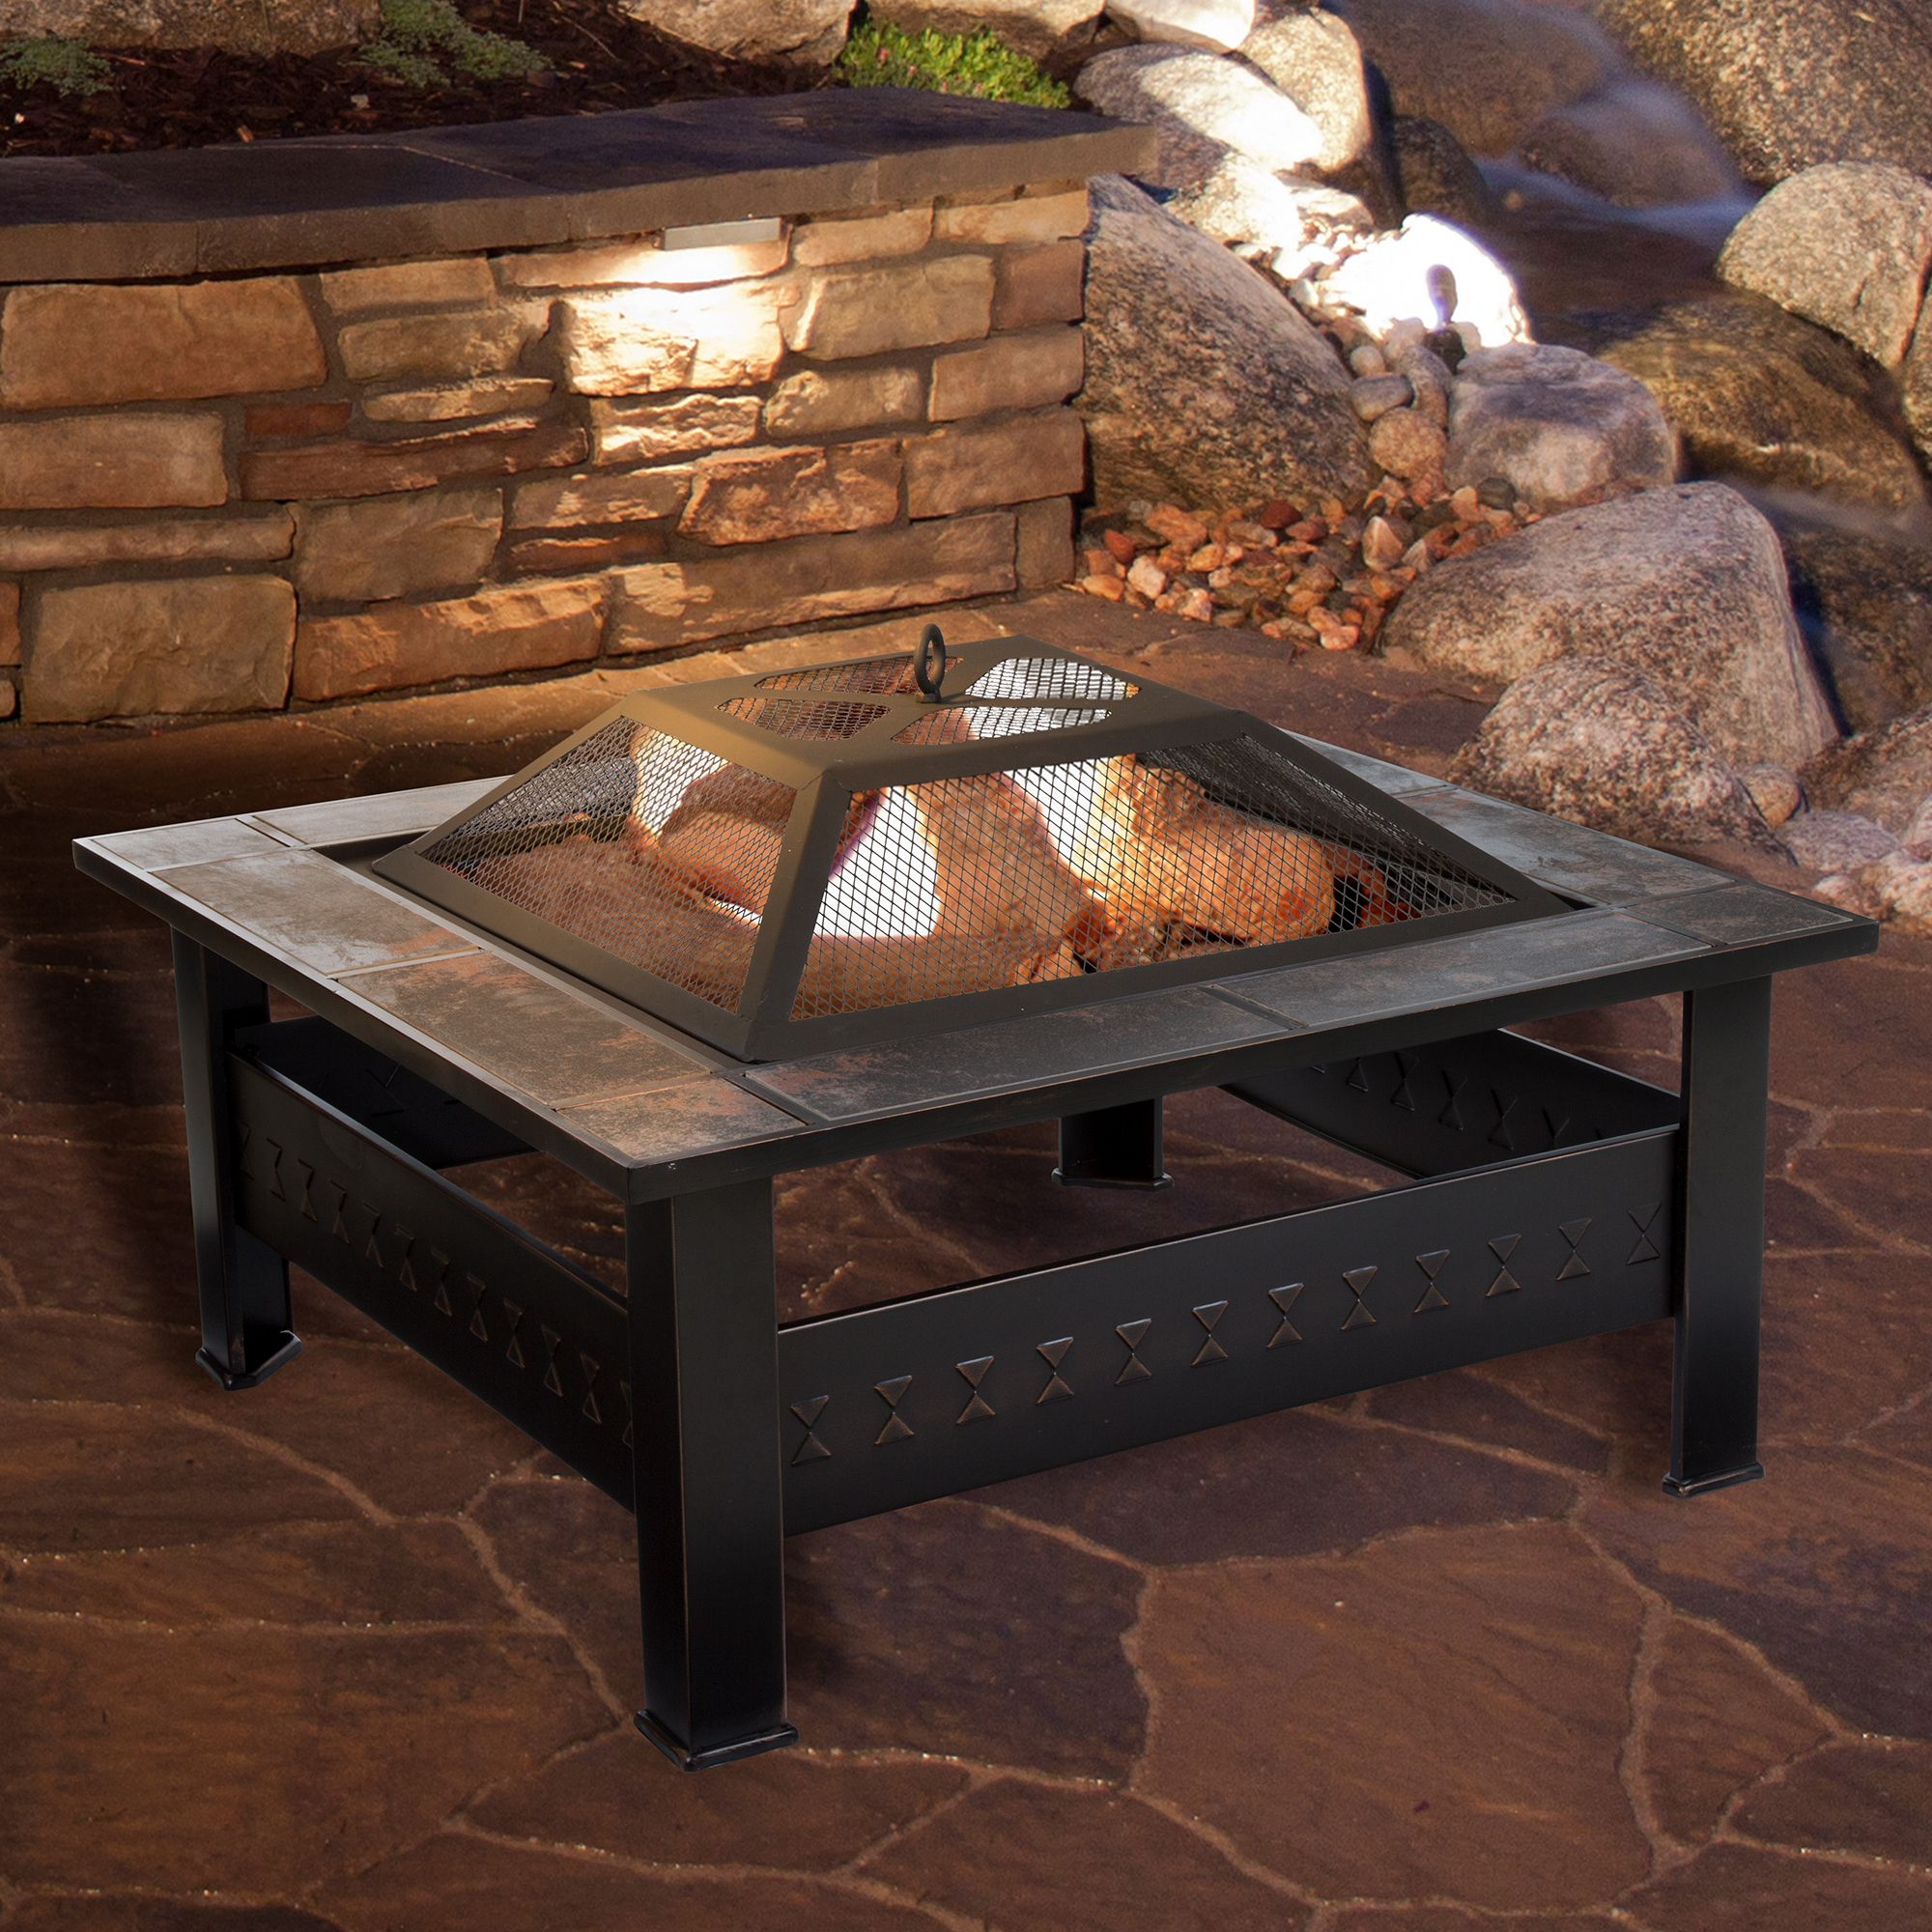 Pure Garden 32 Square Tile Fire Pit With Cover Bronze Finish Fire Pit Table Wood Burning Fire Pit Fire Pit Furniture